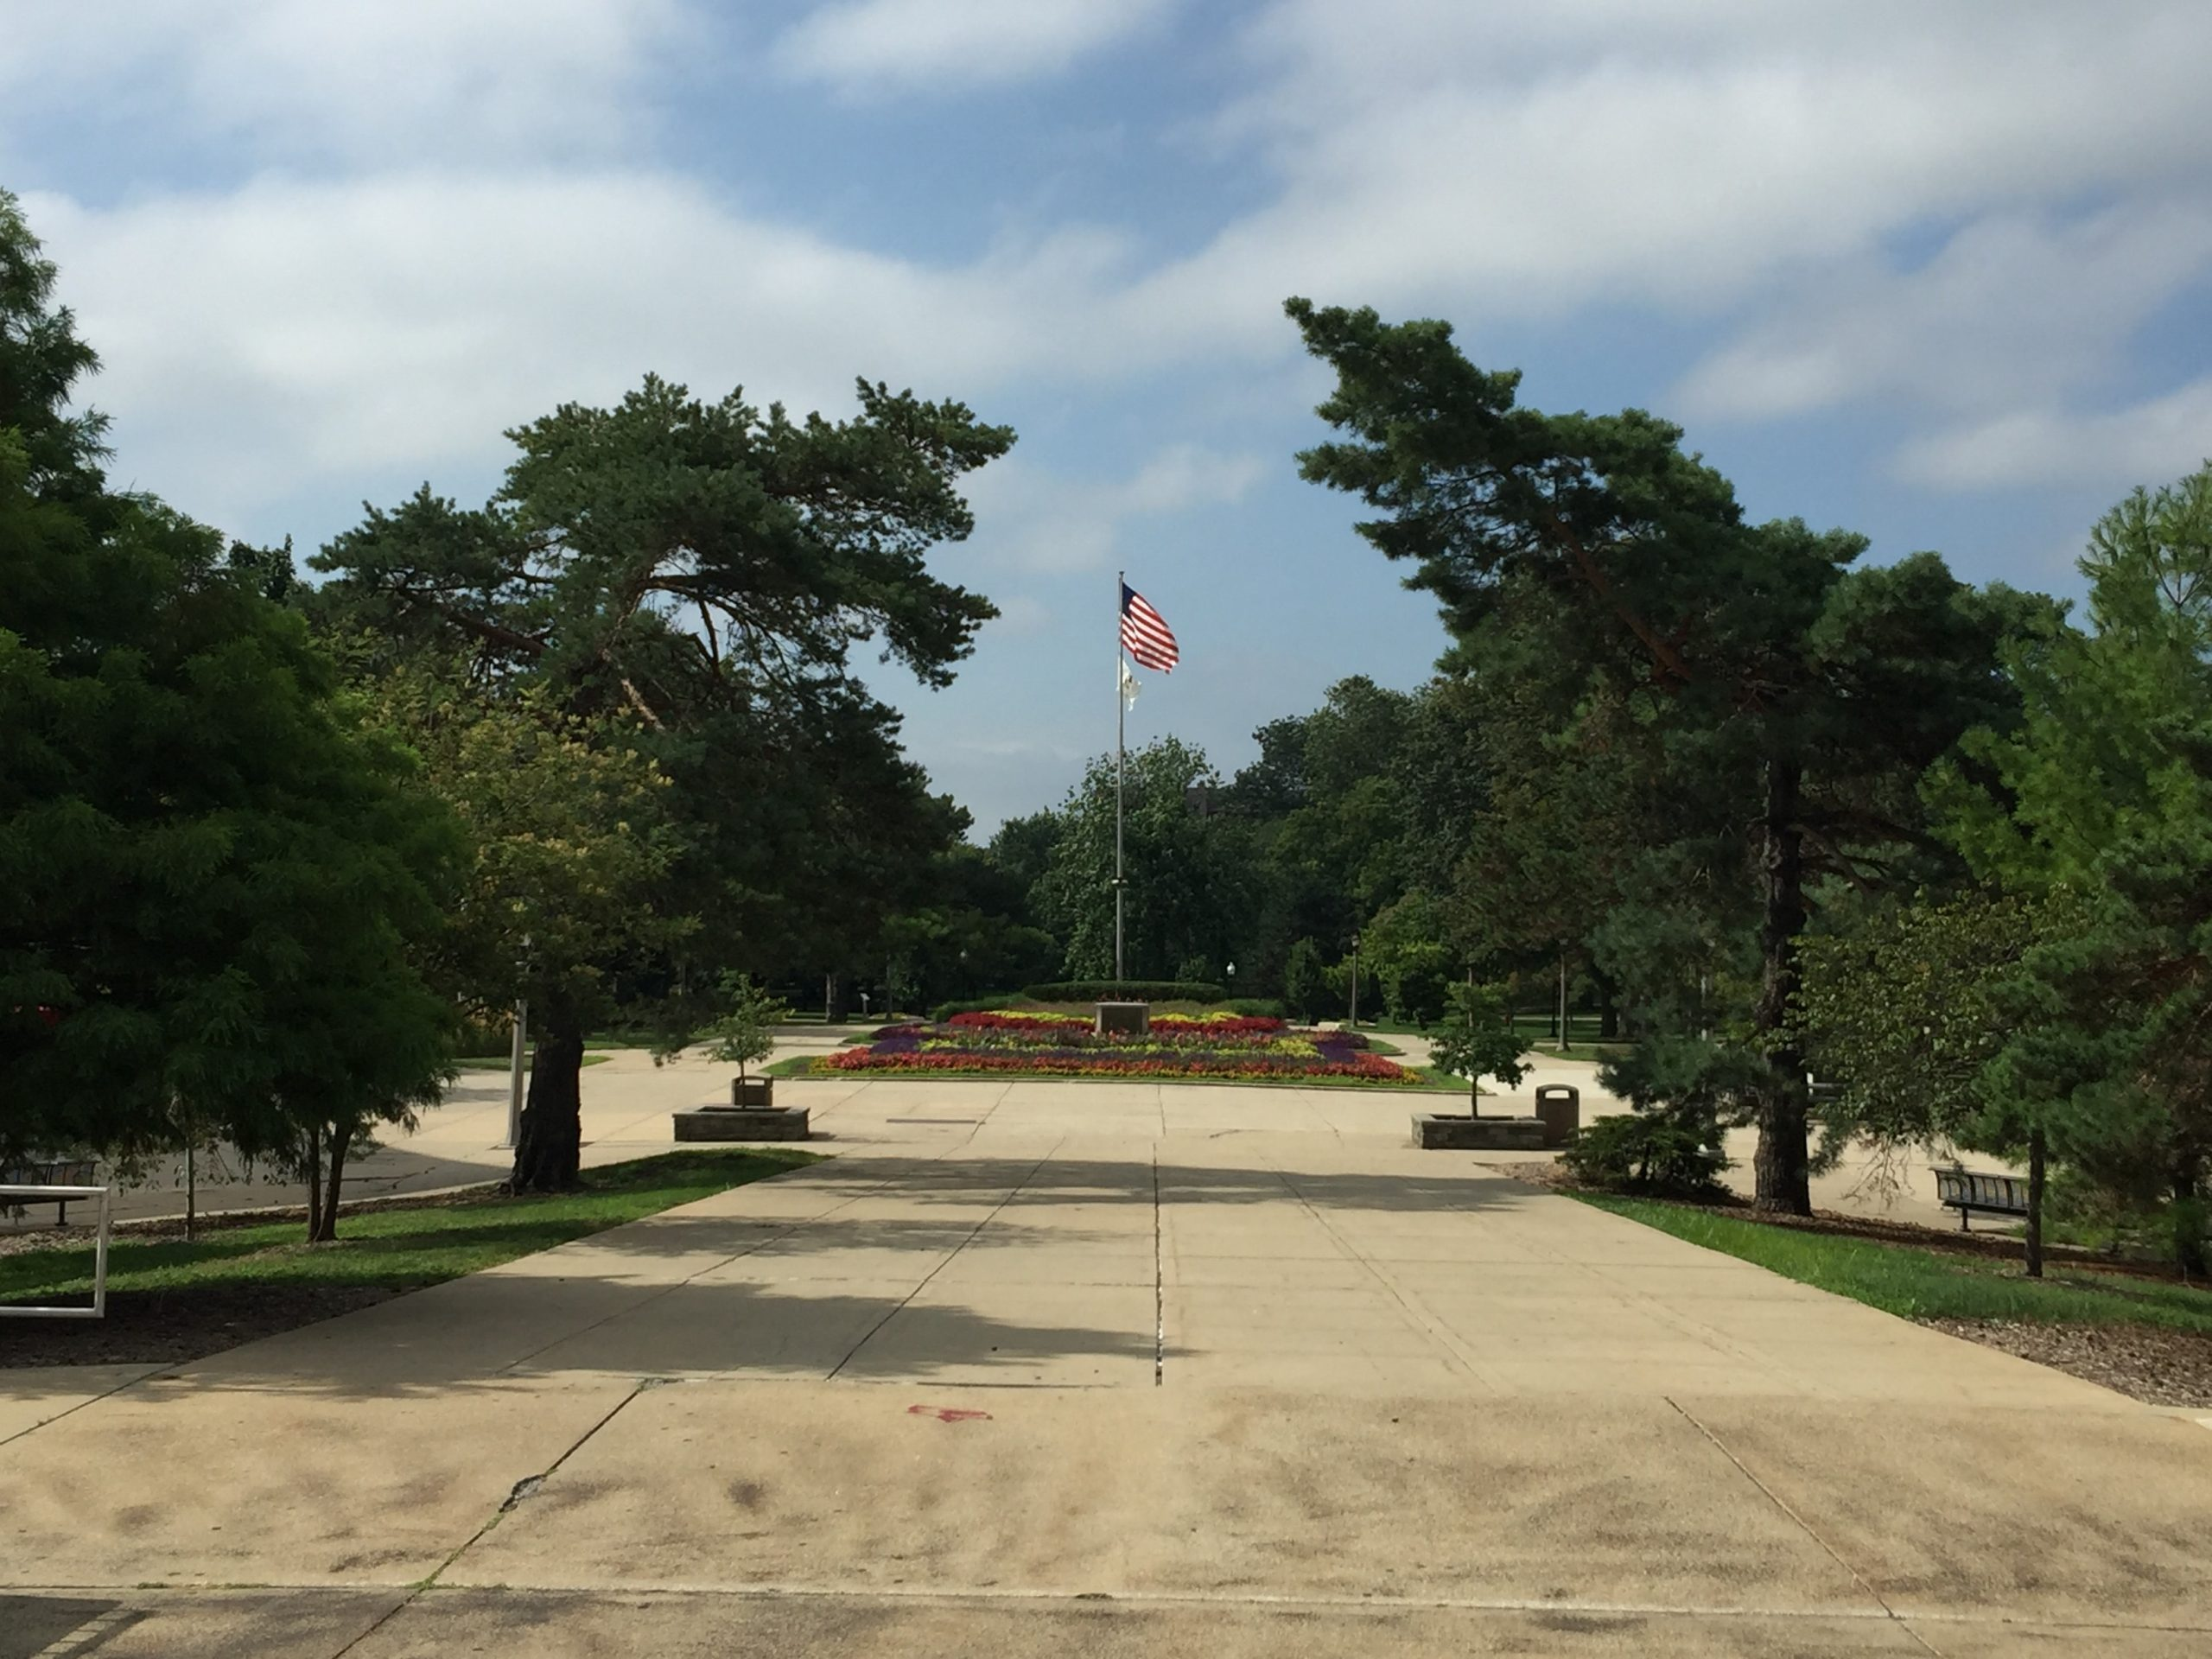 South view of the quad